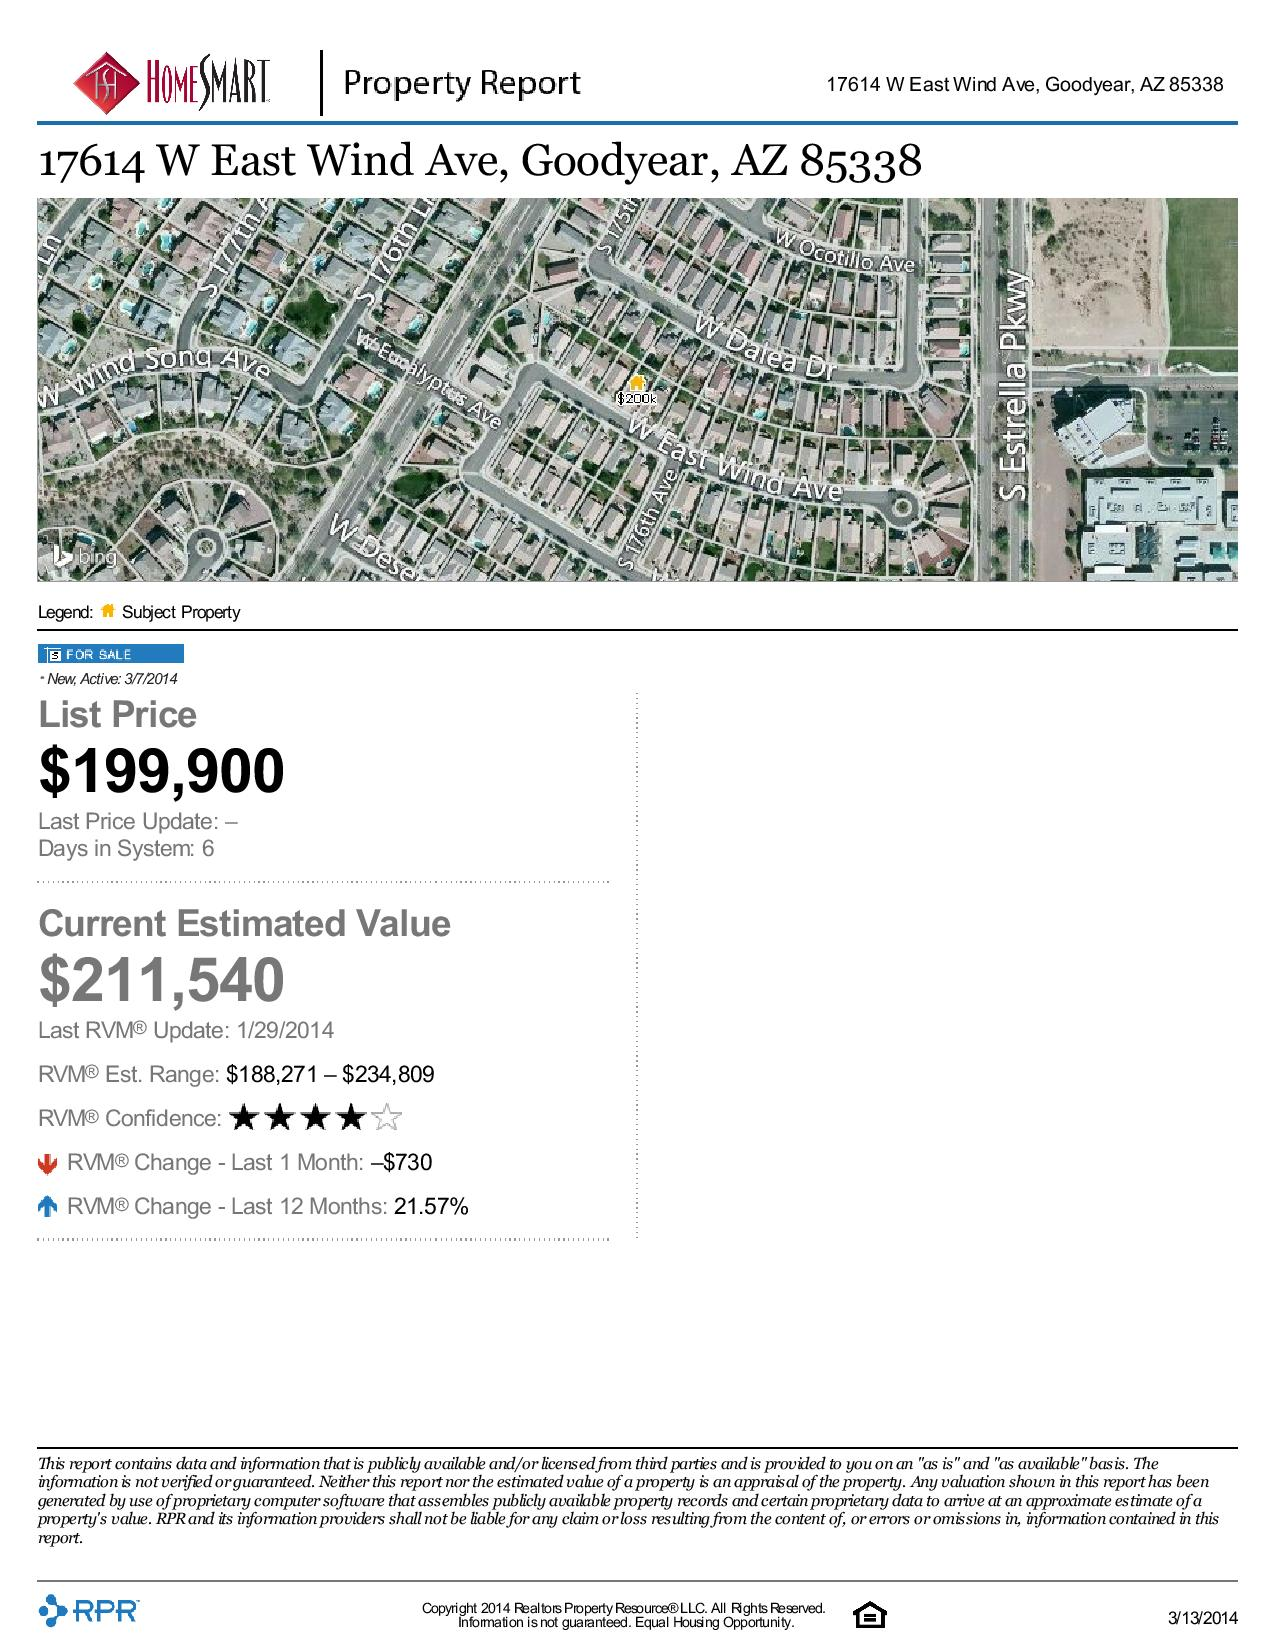 17614-W-East-Wind-Ave-Goodyear-AZ-85338-page-002